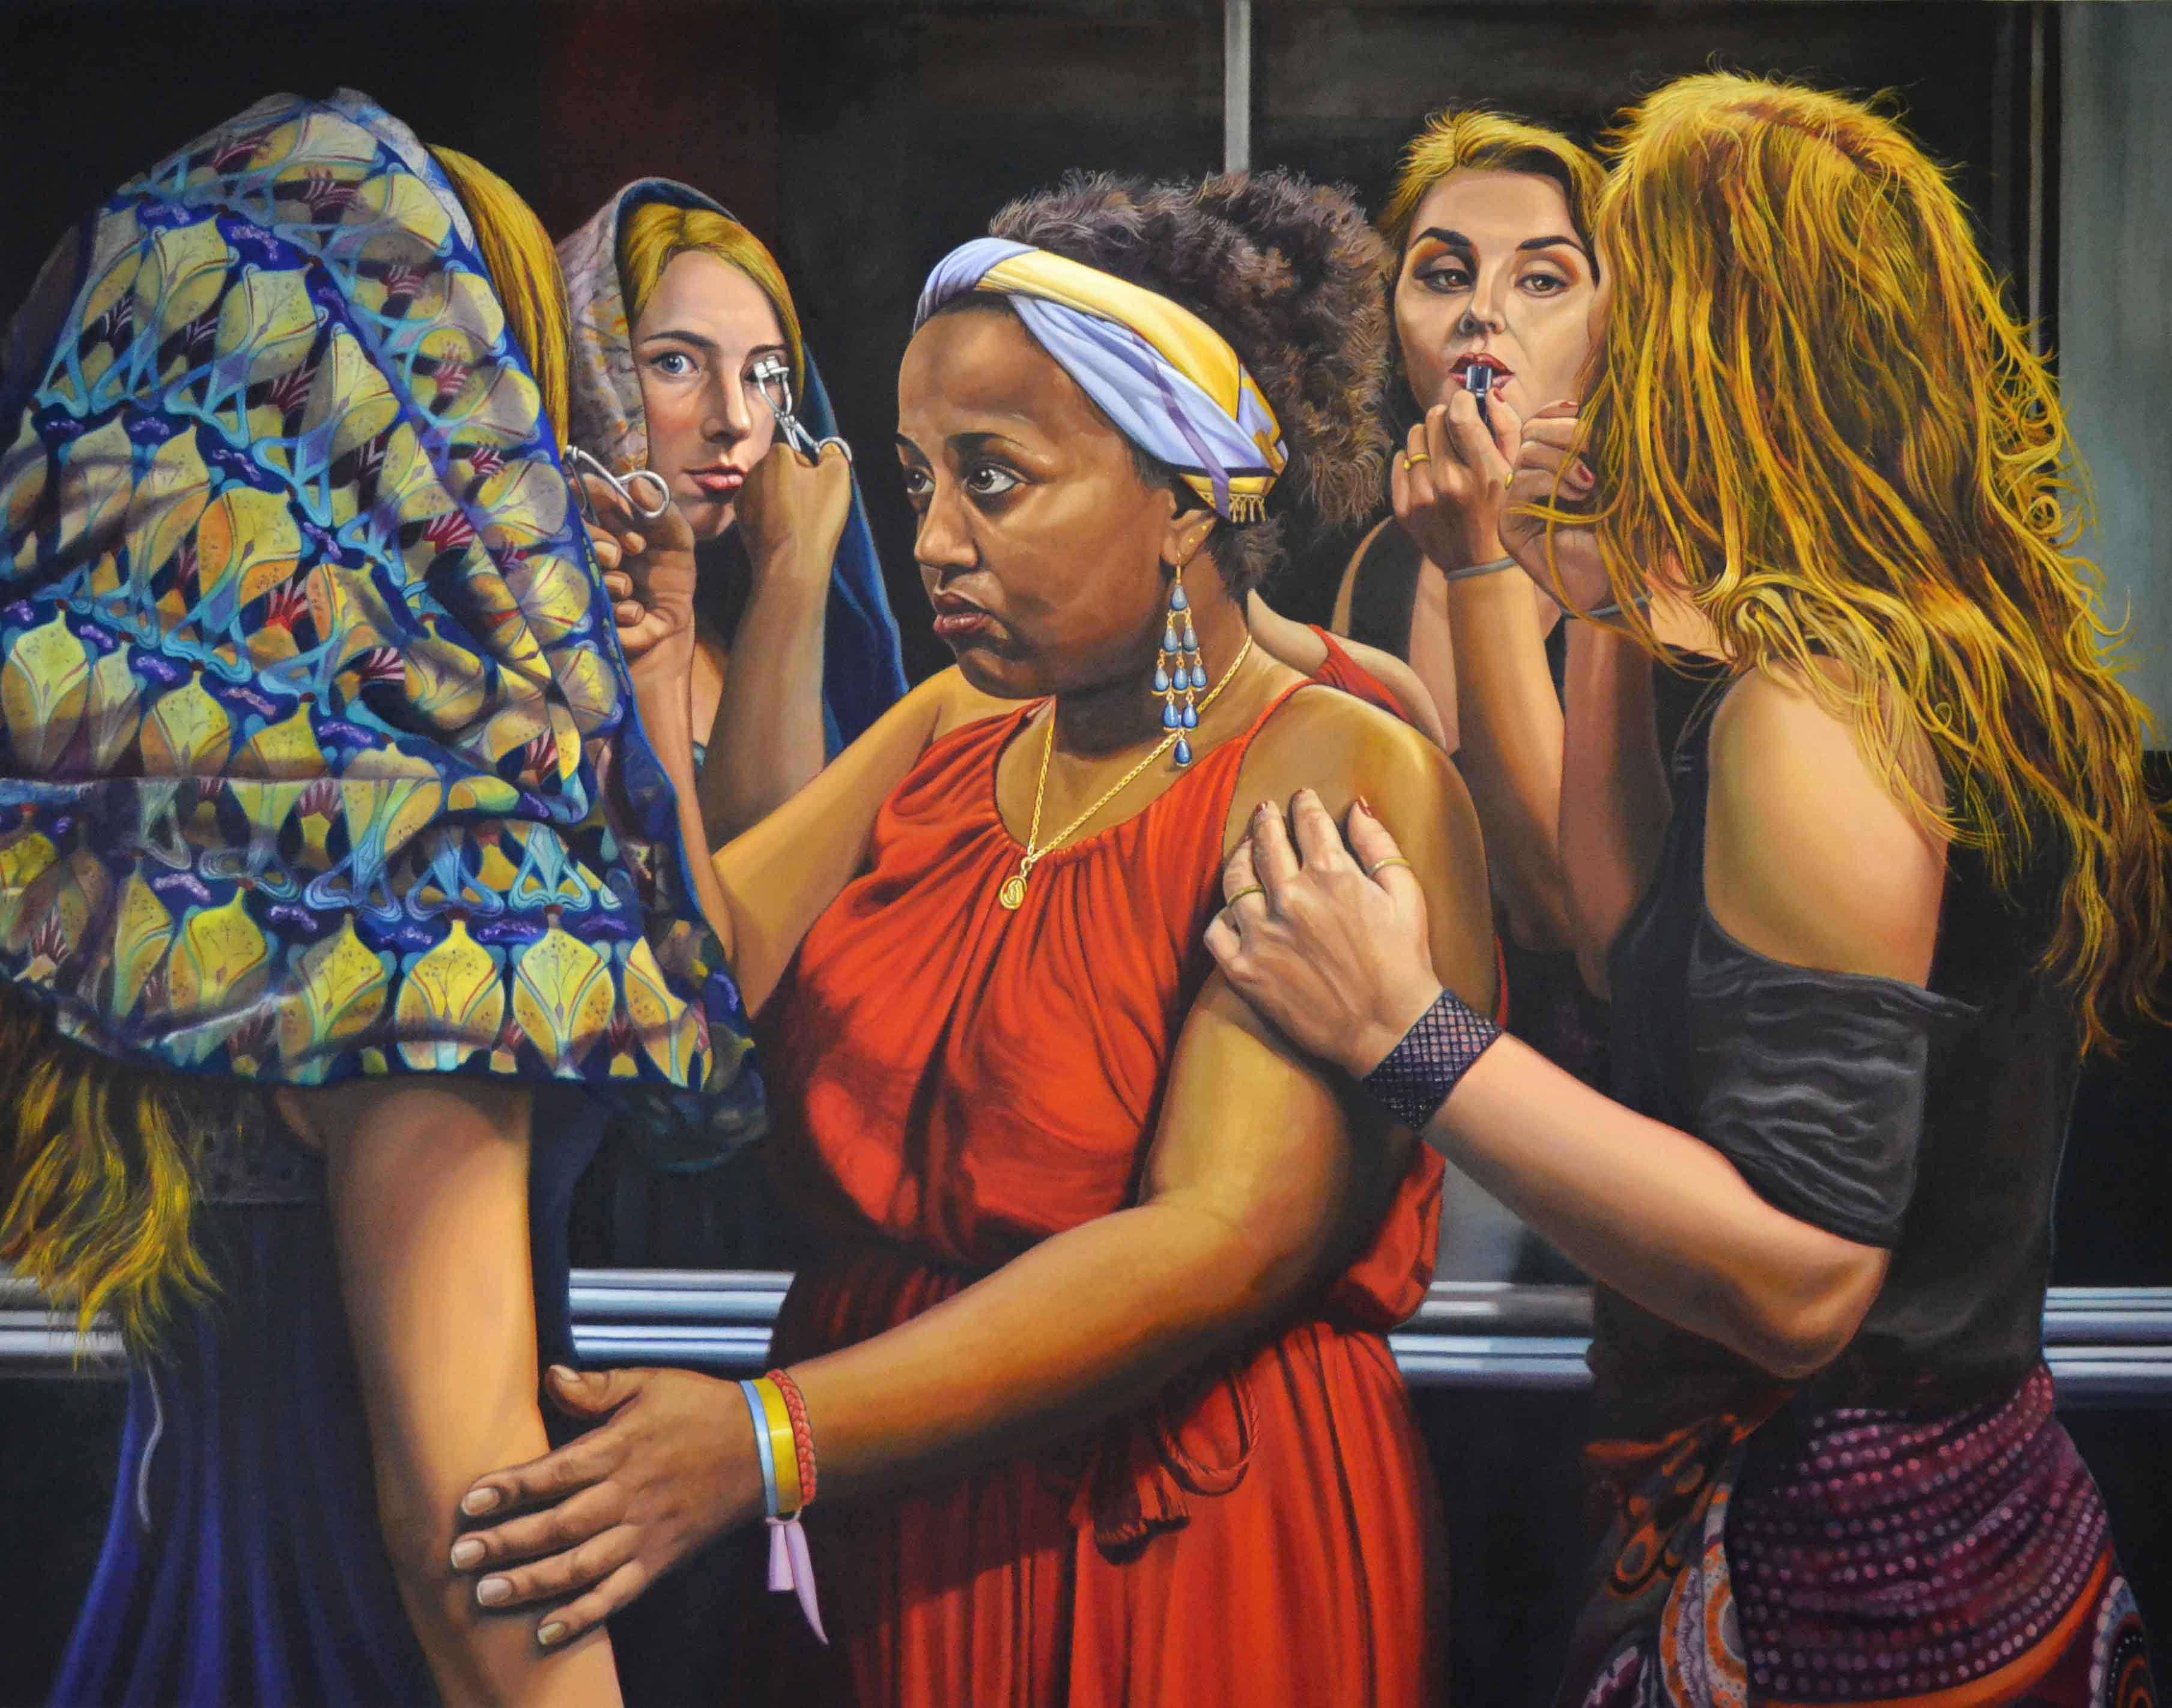 Girls at the mirror, 2014, Tuval üzerine yağlıboya, 180x230 cm